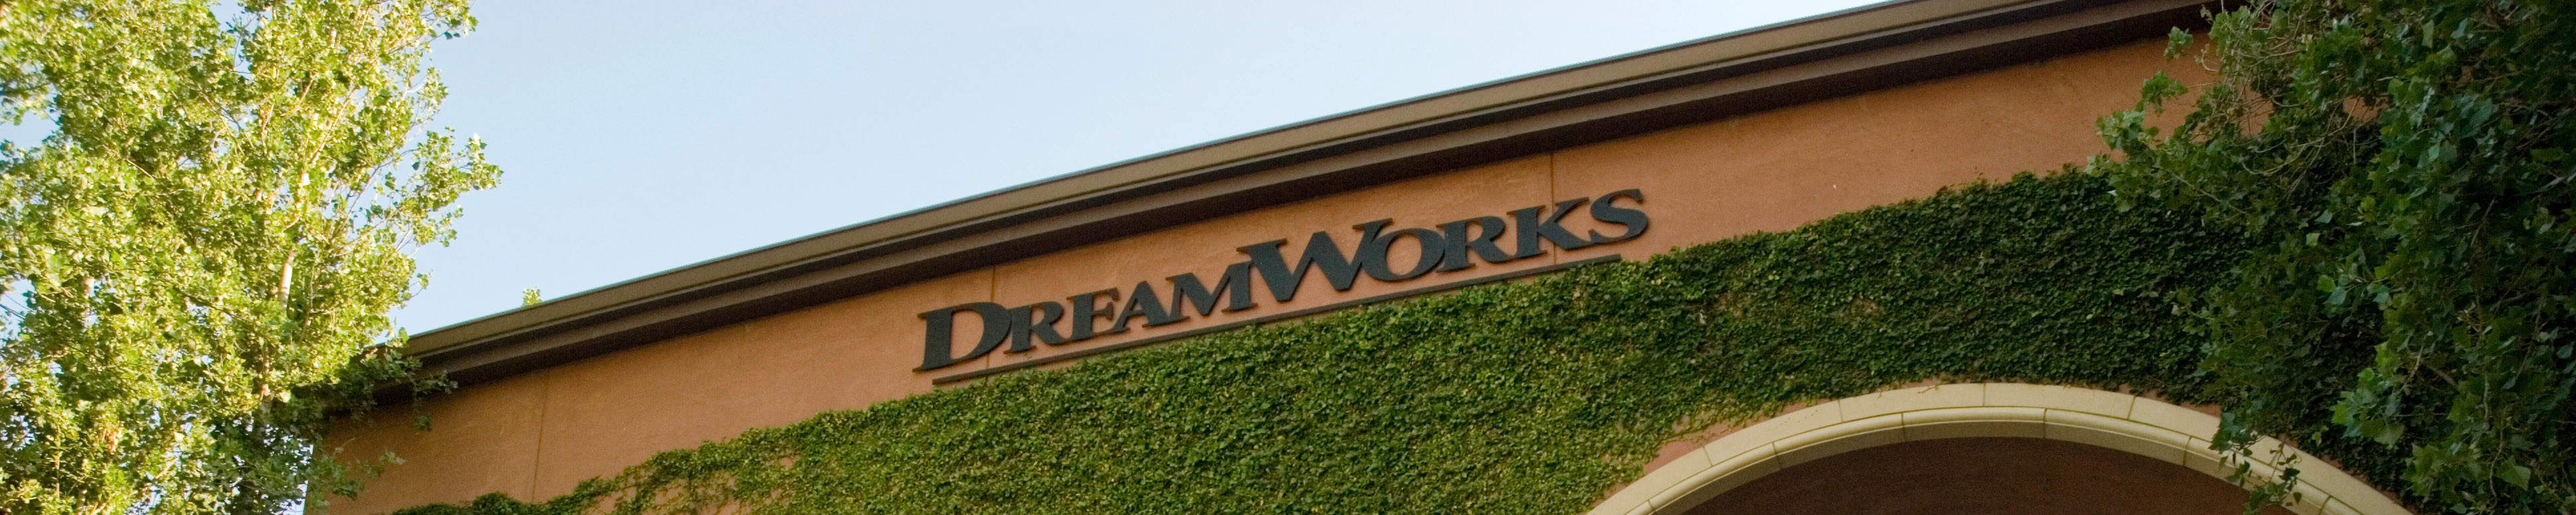 Dreamworks logo - Copie